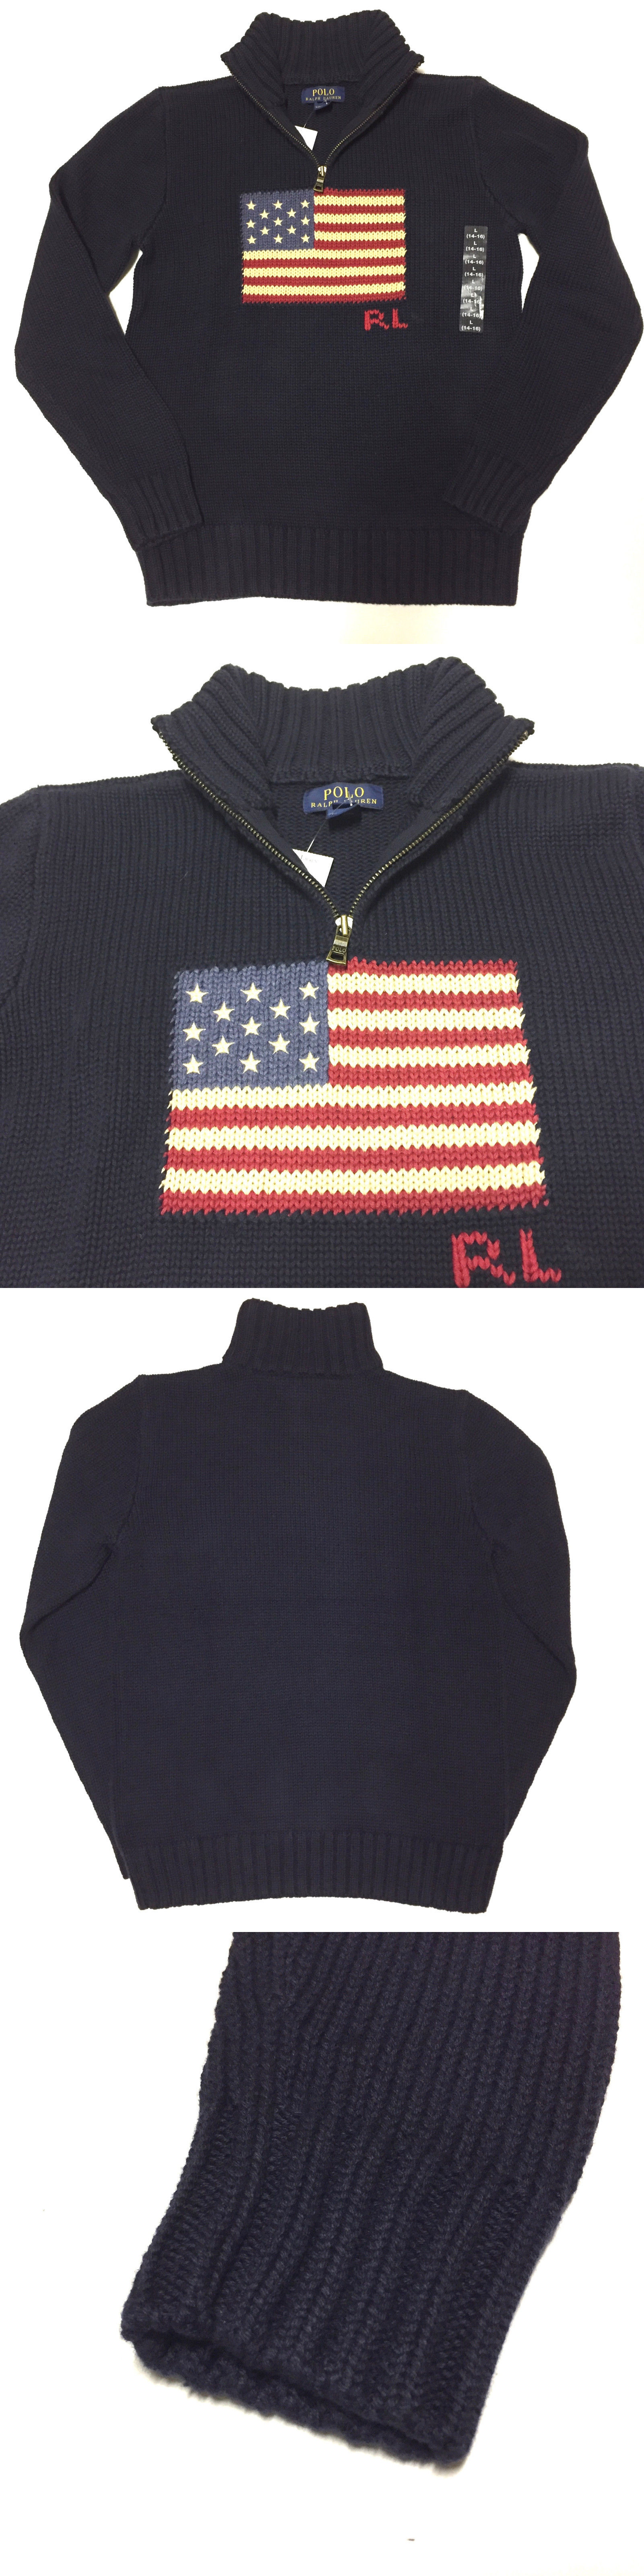 e5dc3e6687dc ... low cost sweatshirts and hoodies 57916 89 boys polo ralph lauren flag  sweater half zip blue ...